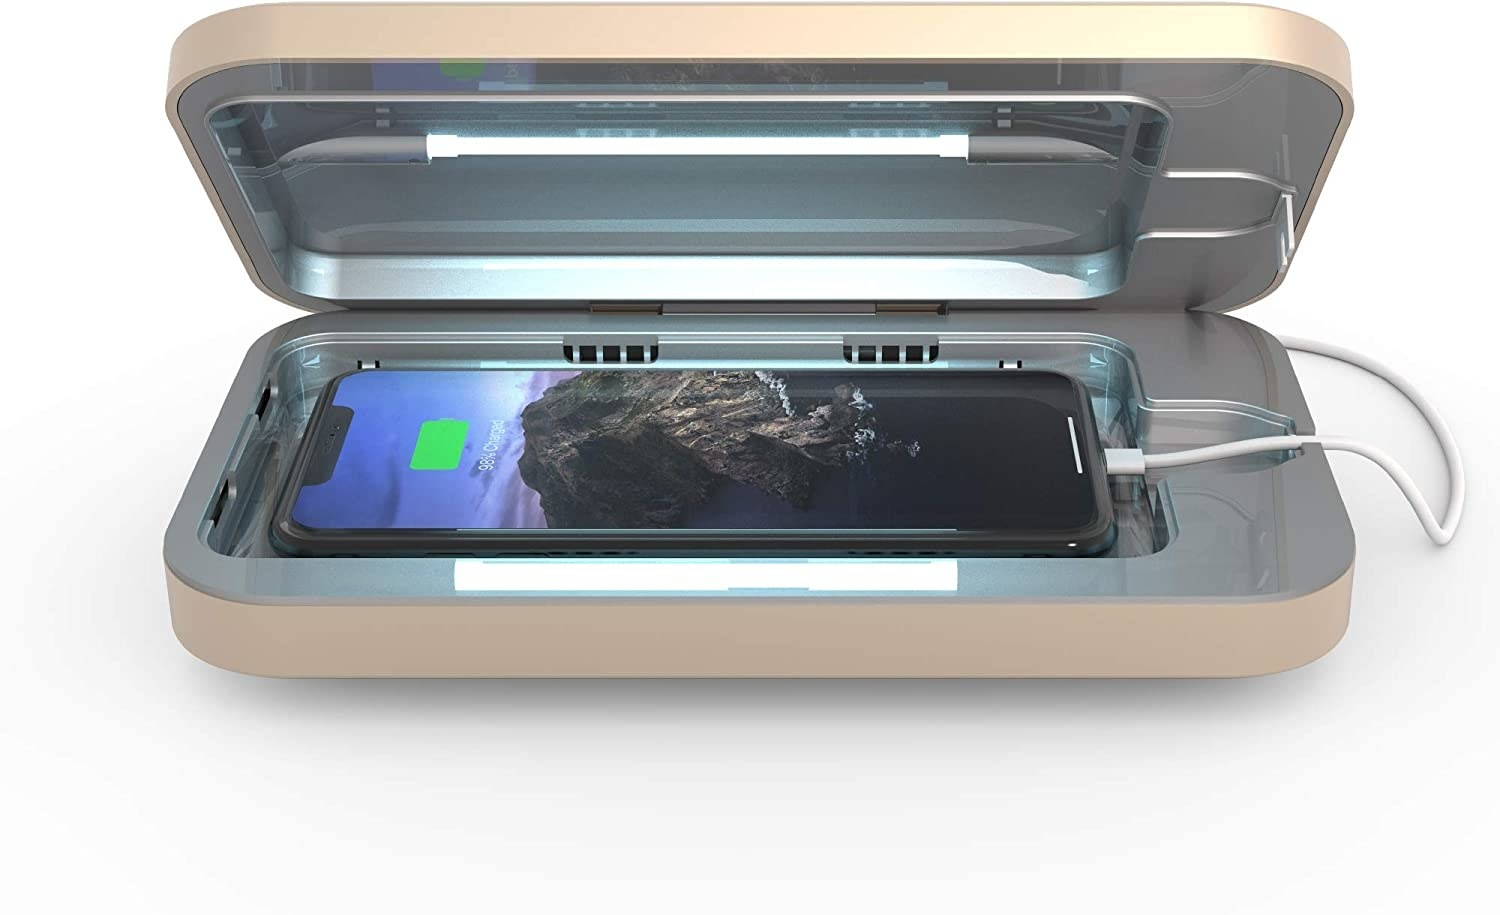 open phonesoap device with a phone inside charging and light shining on the phone to sanitize